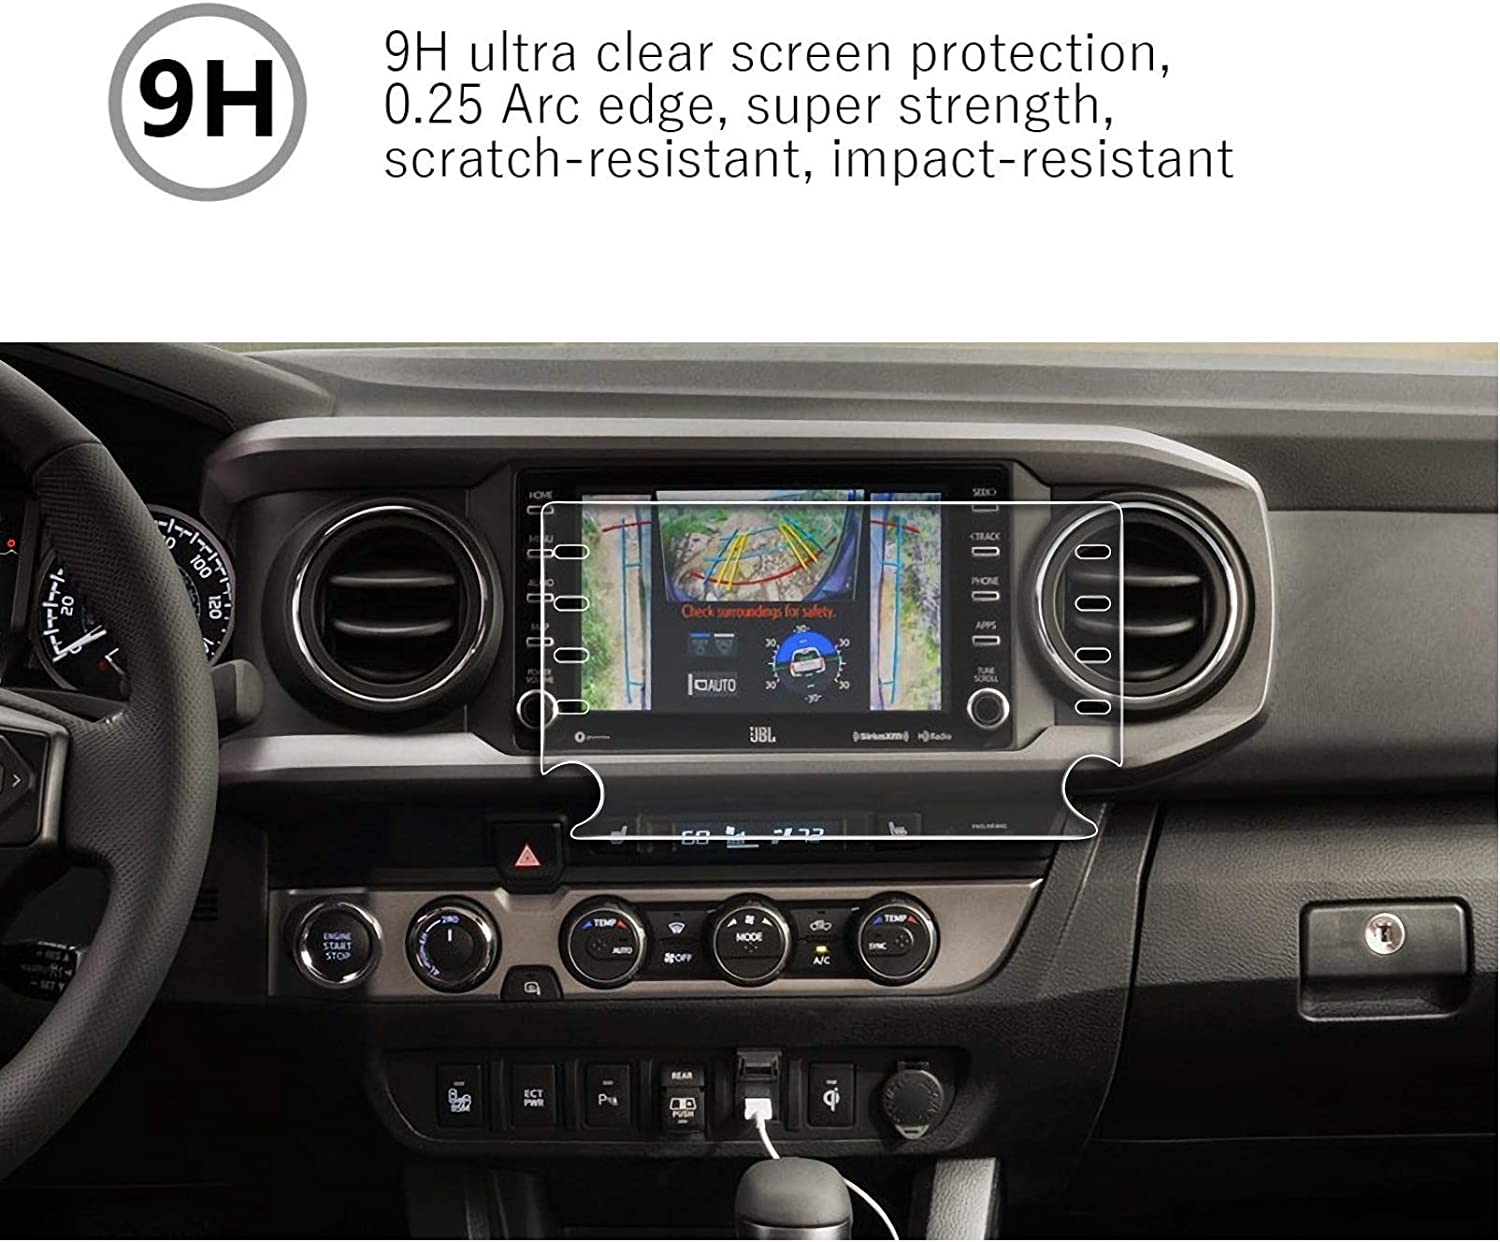 MBSIX Tempered Glass Screen Protector Compatiple with 2020 Tacoma 8 Inch Touch Screen,HD Clear,Scratch-Resistant,Anti Glare,Protecting Toyota 8 Inch Screen